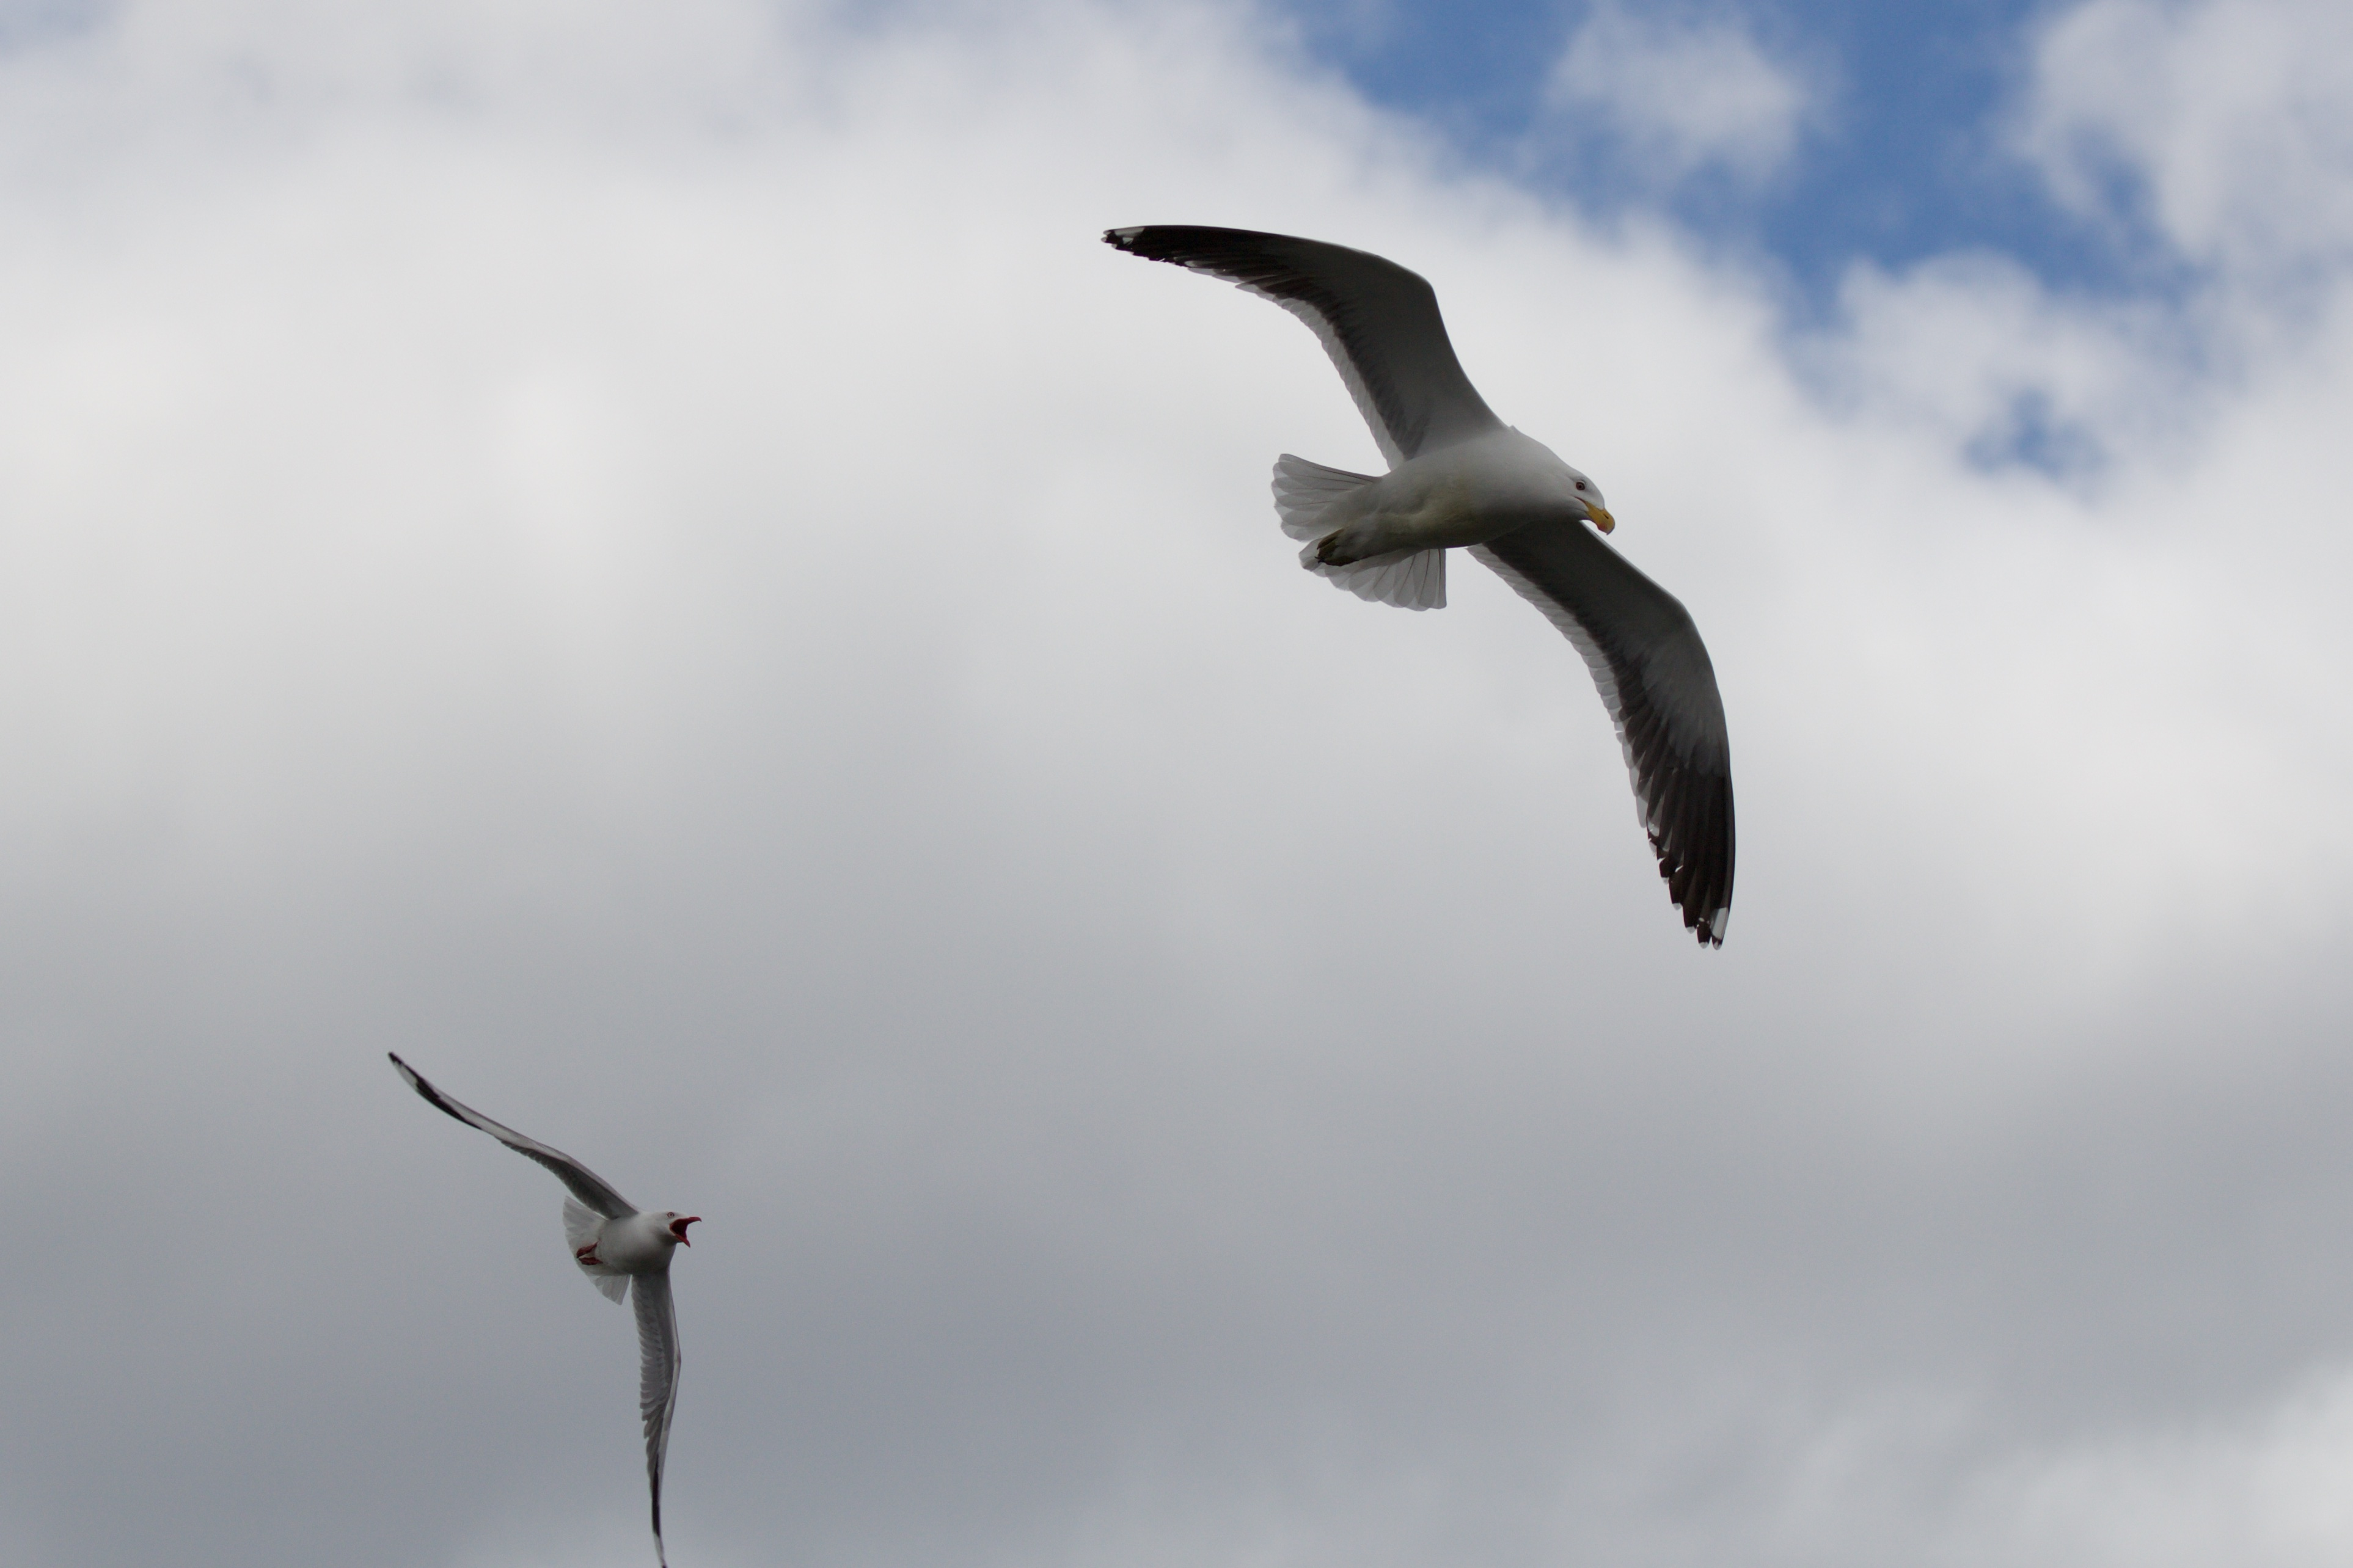 Black-backed gull chased by red-billed gull